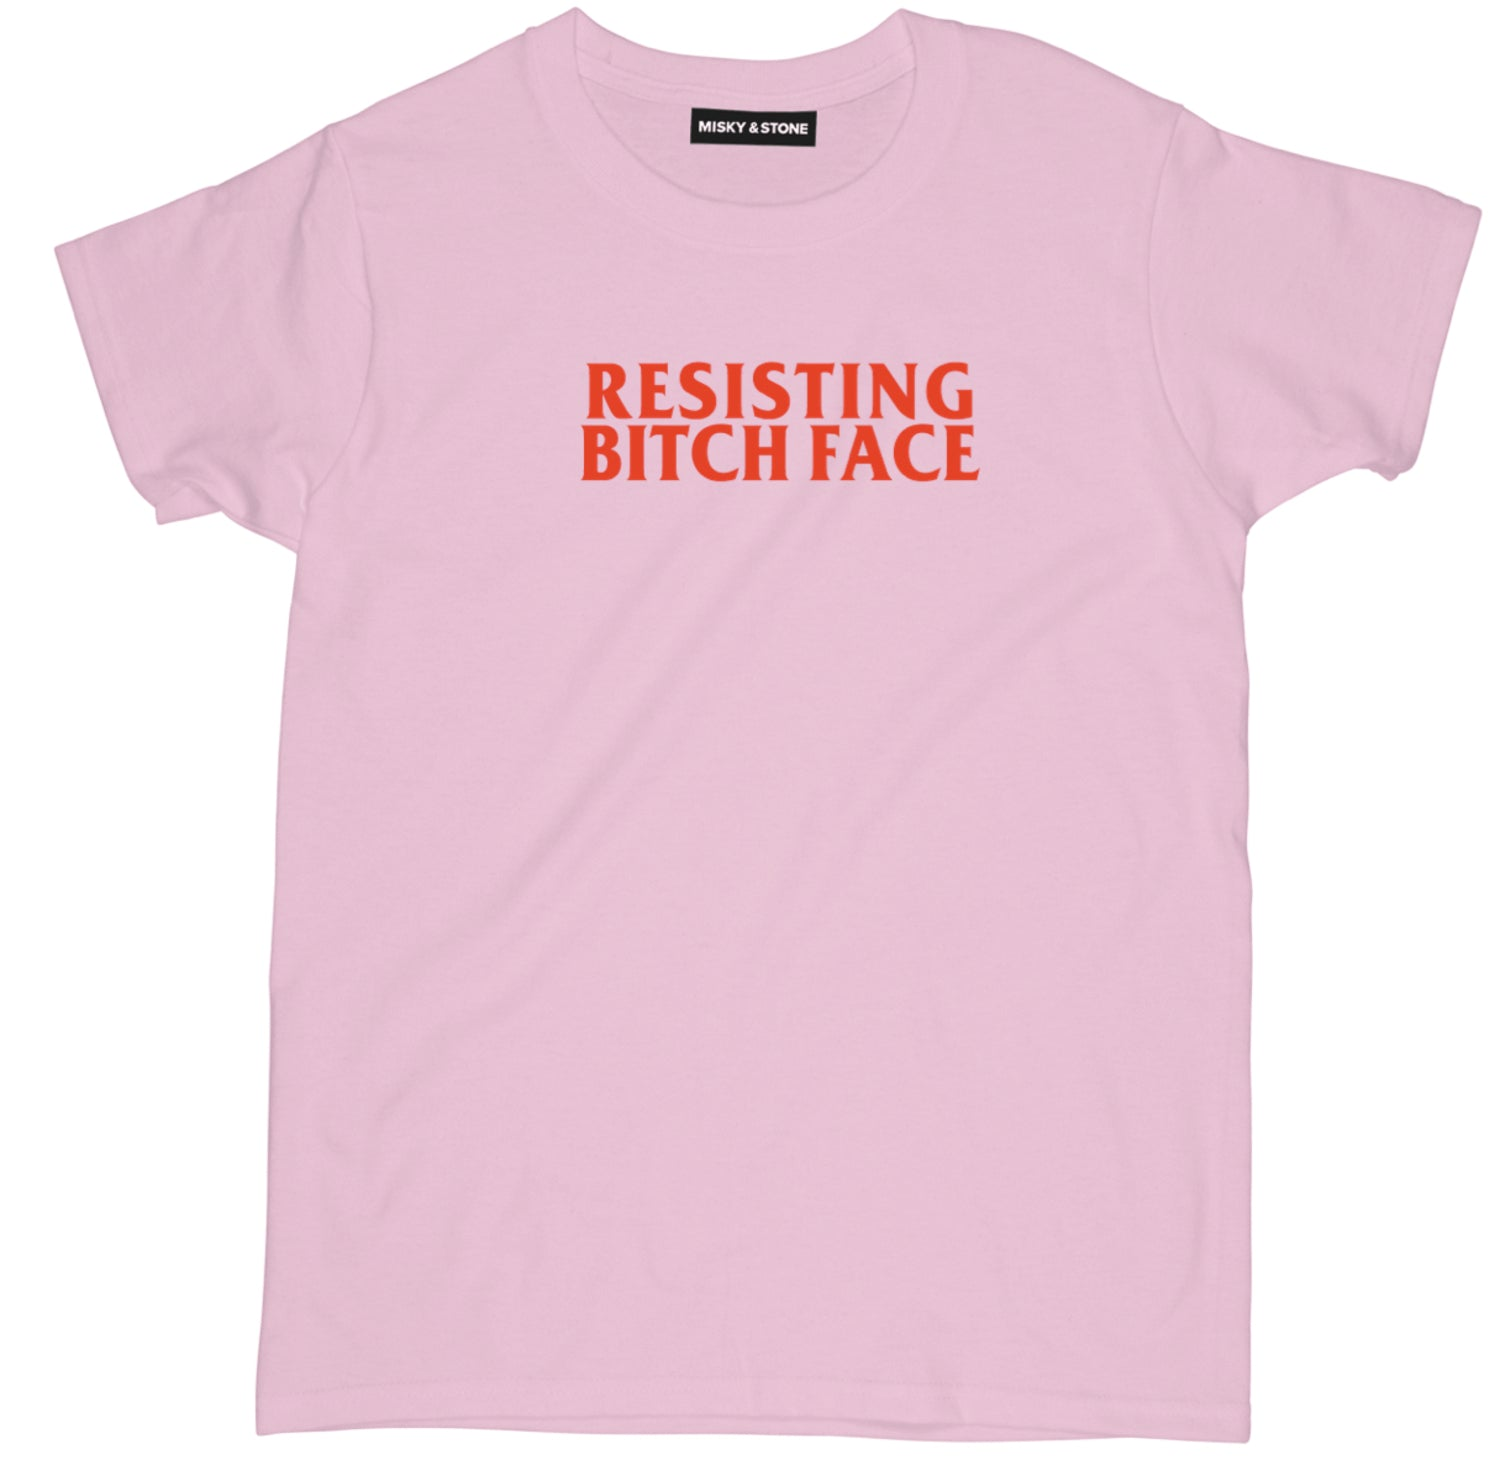 Resisting Bitch Face Tee Shirt